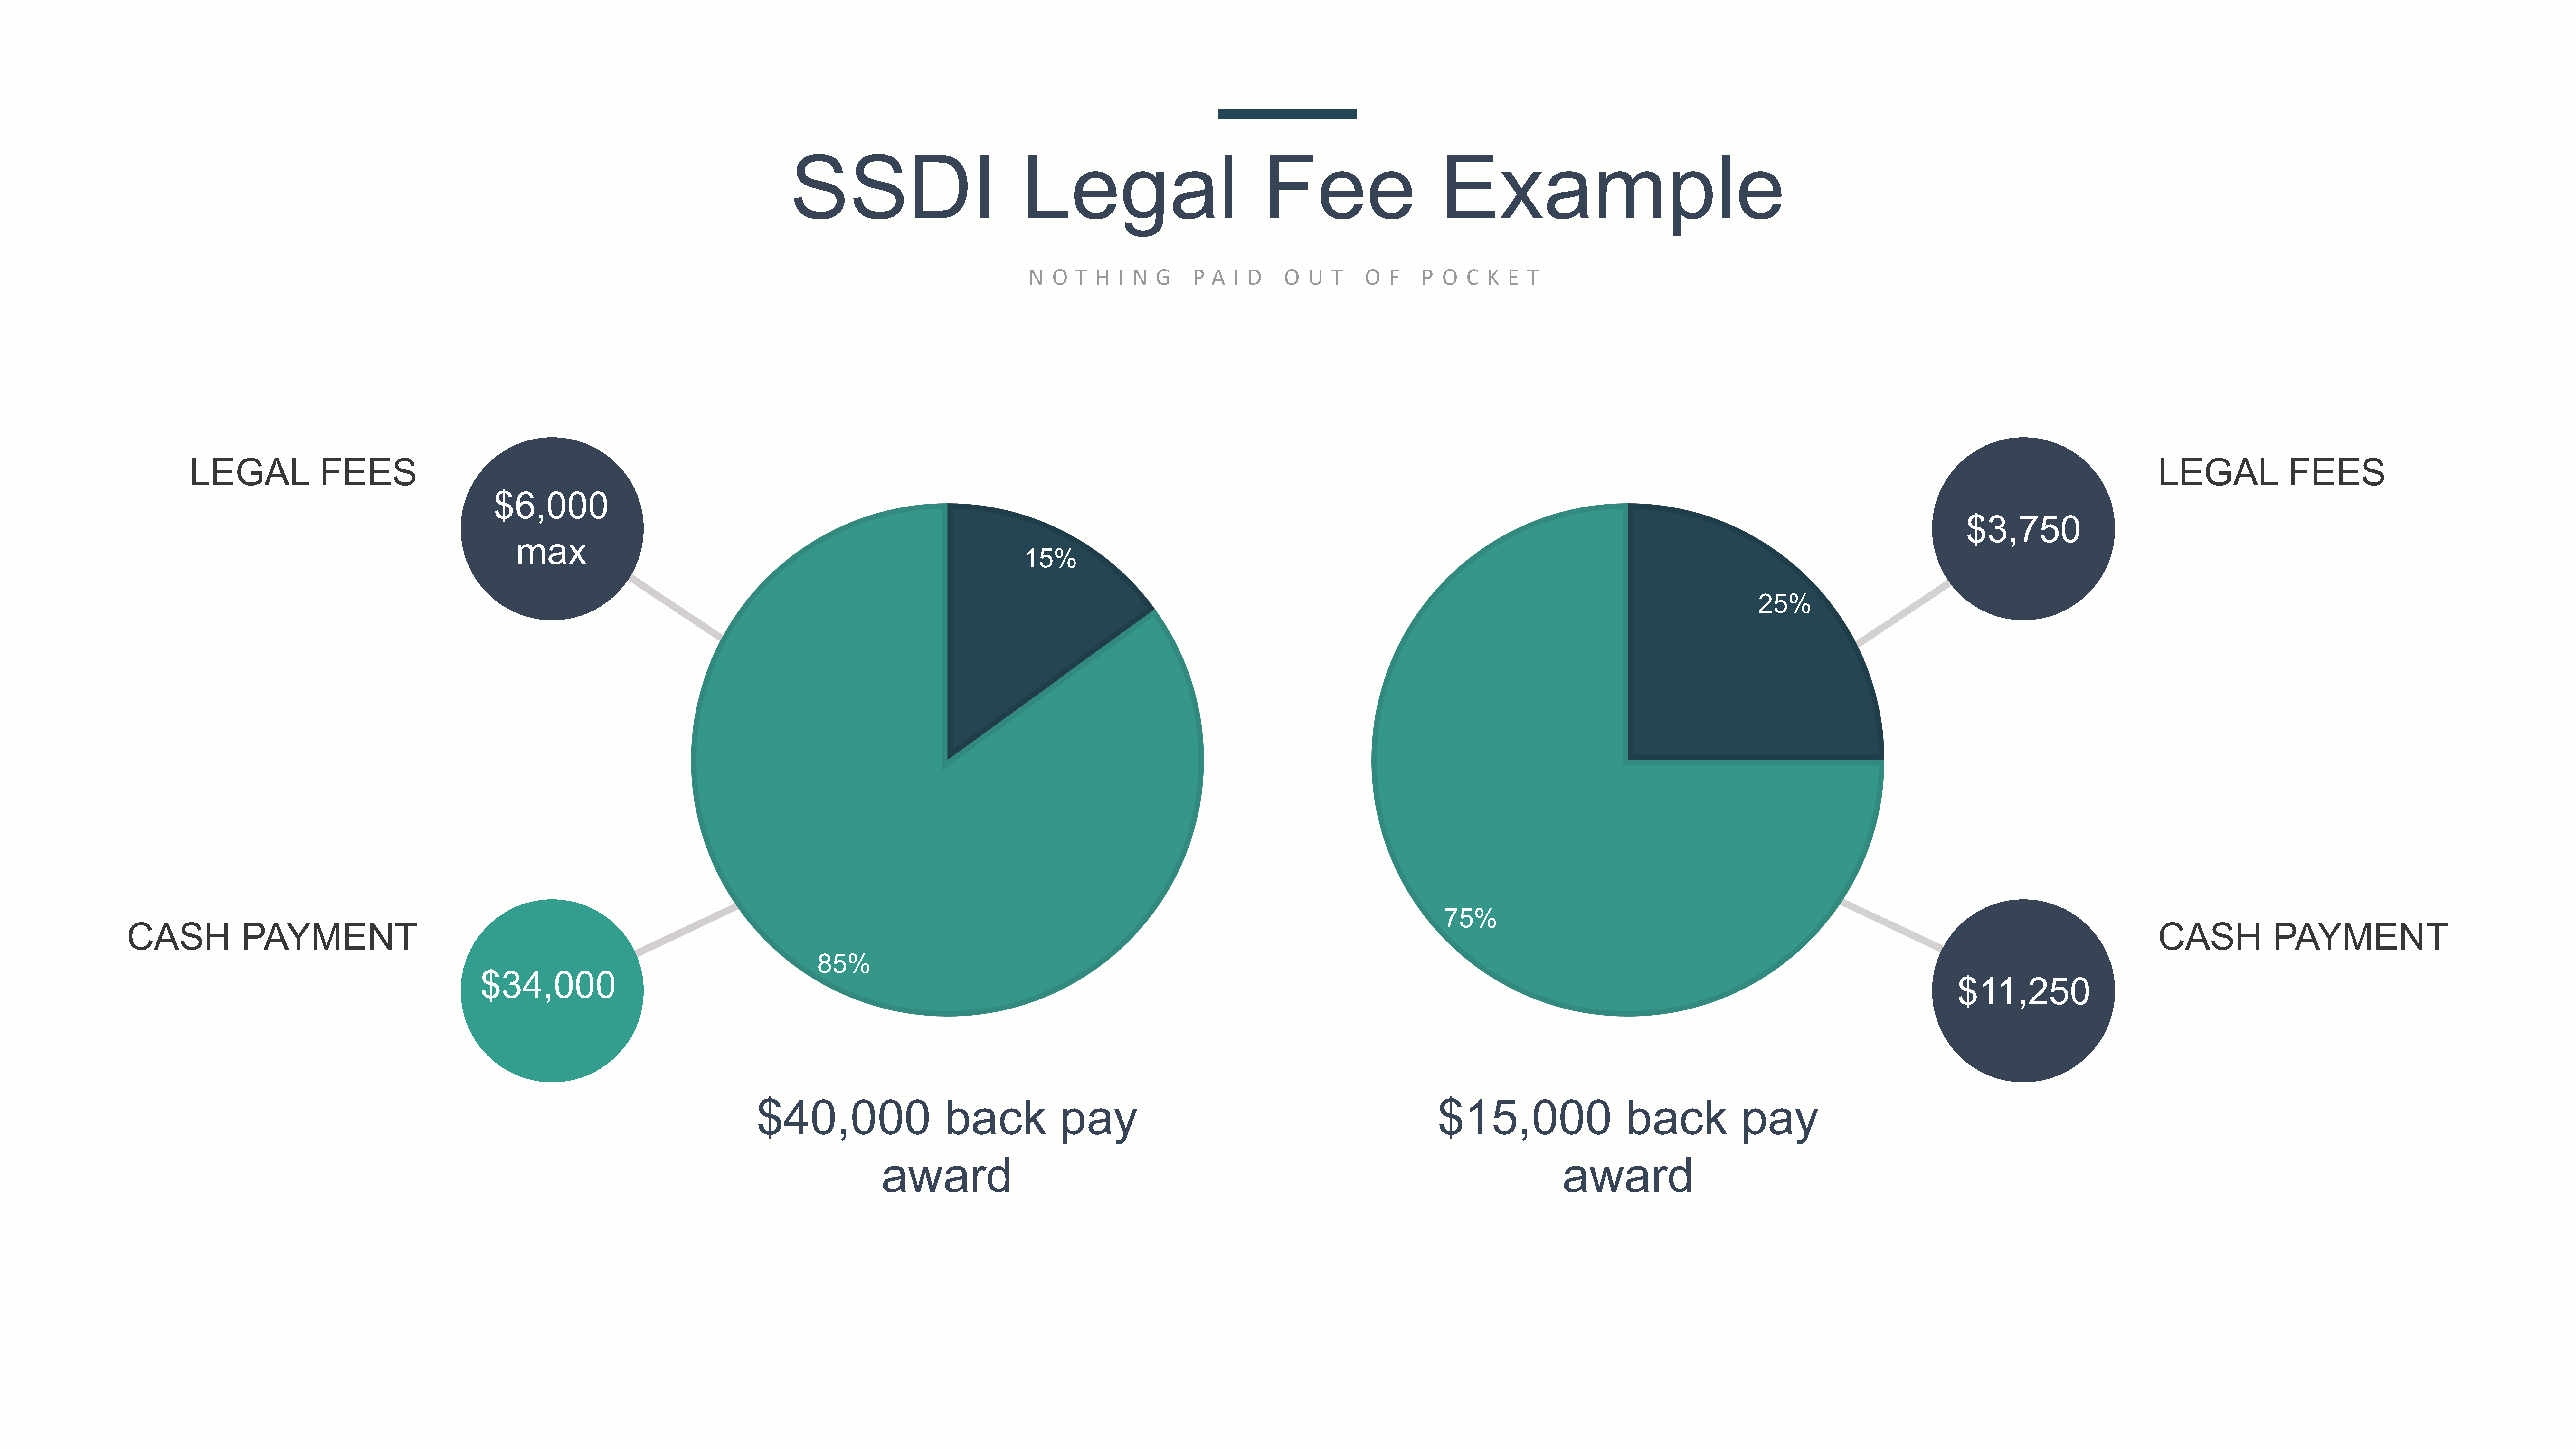 SSDI Legal Fee Example graph with pie charts